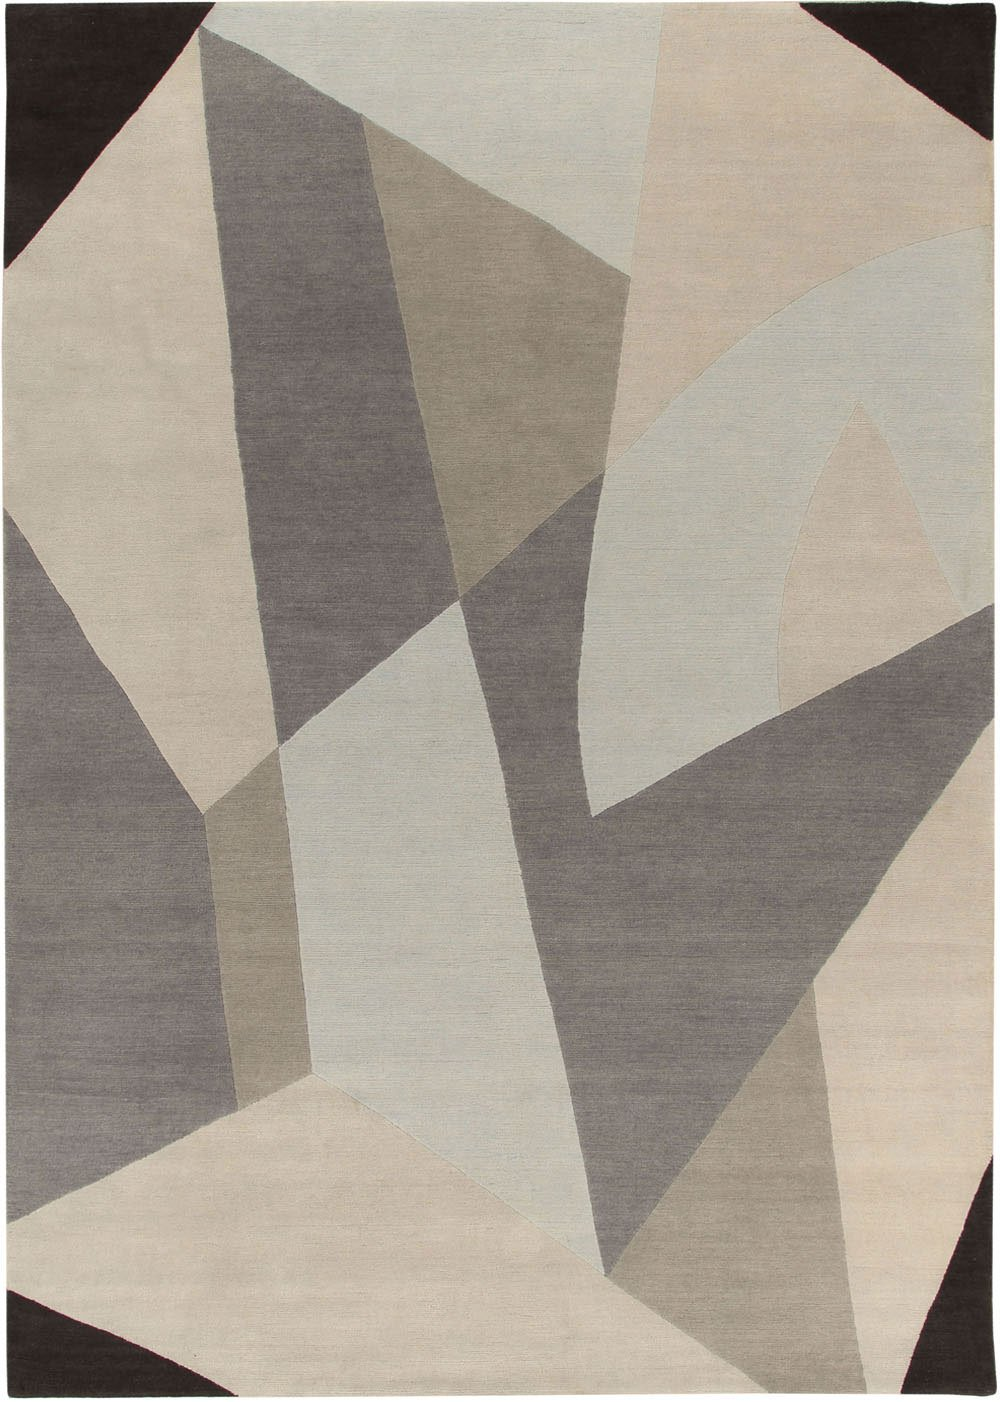 La Datina riflessi carpet Gio Ponti